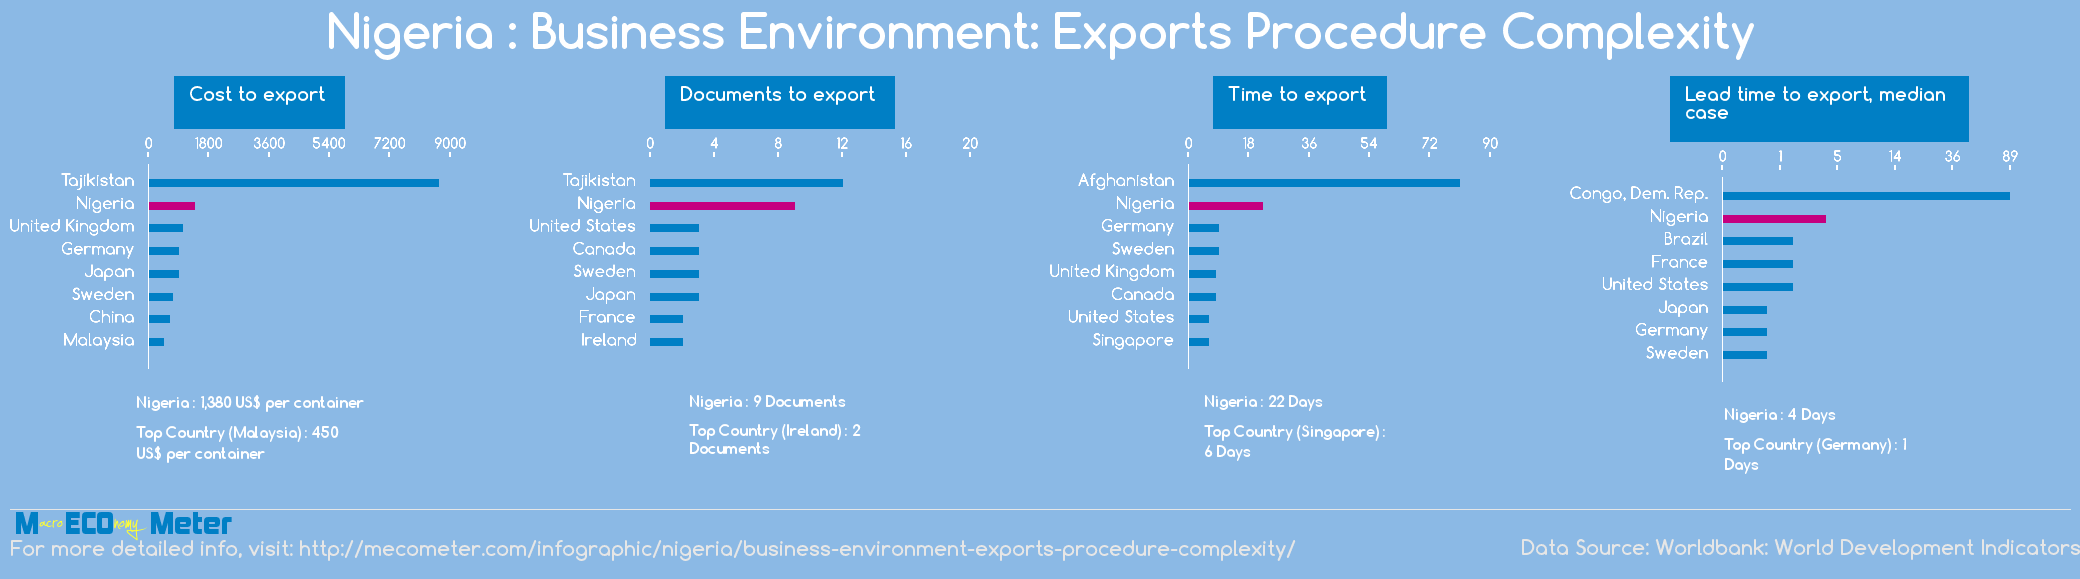 Nigeria : Business Environment: Exports Procedure Complexity